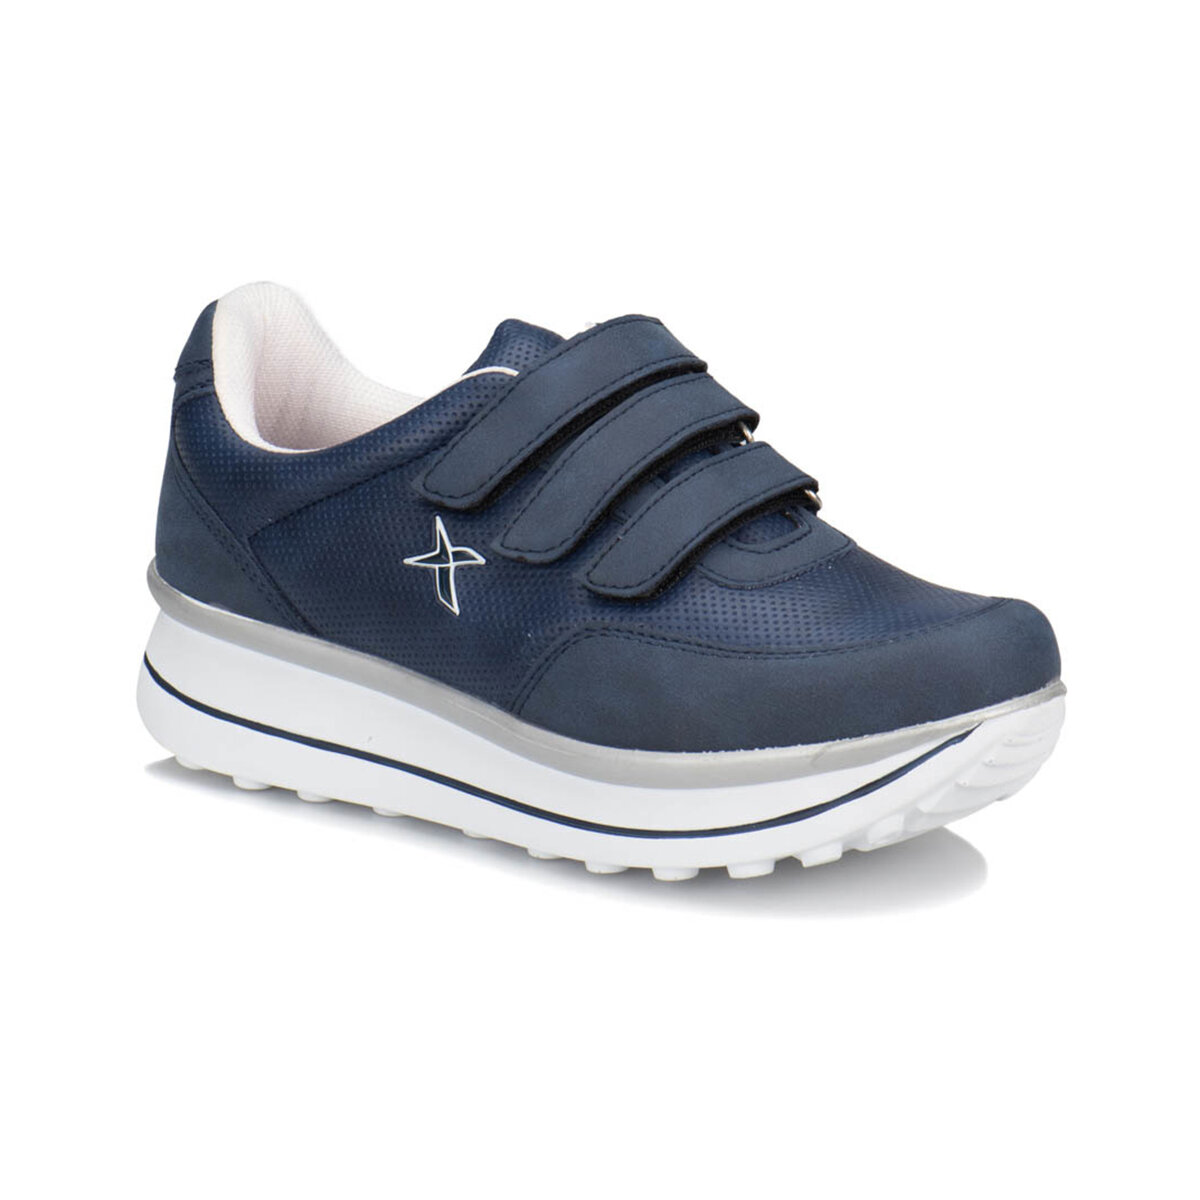 FLO PAULET Navy Blue Women 'S Sneaker Shoes KINETIX